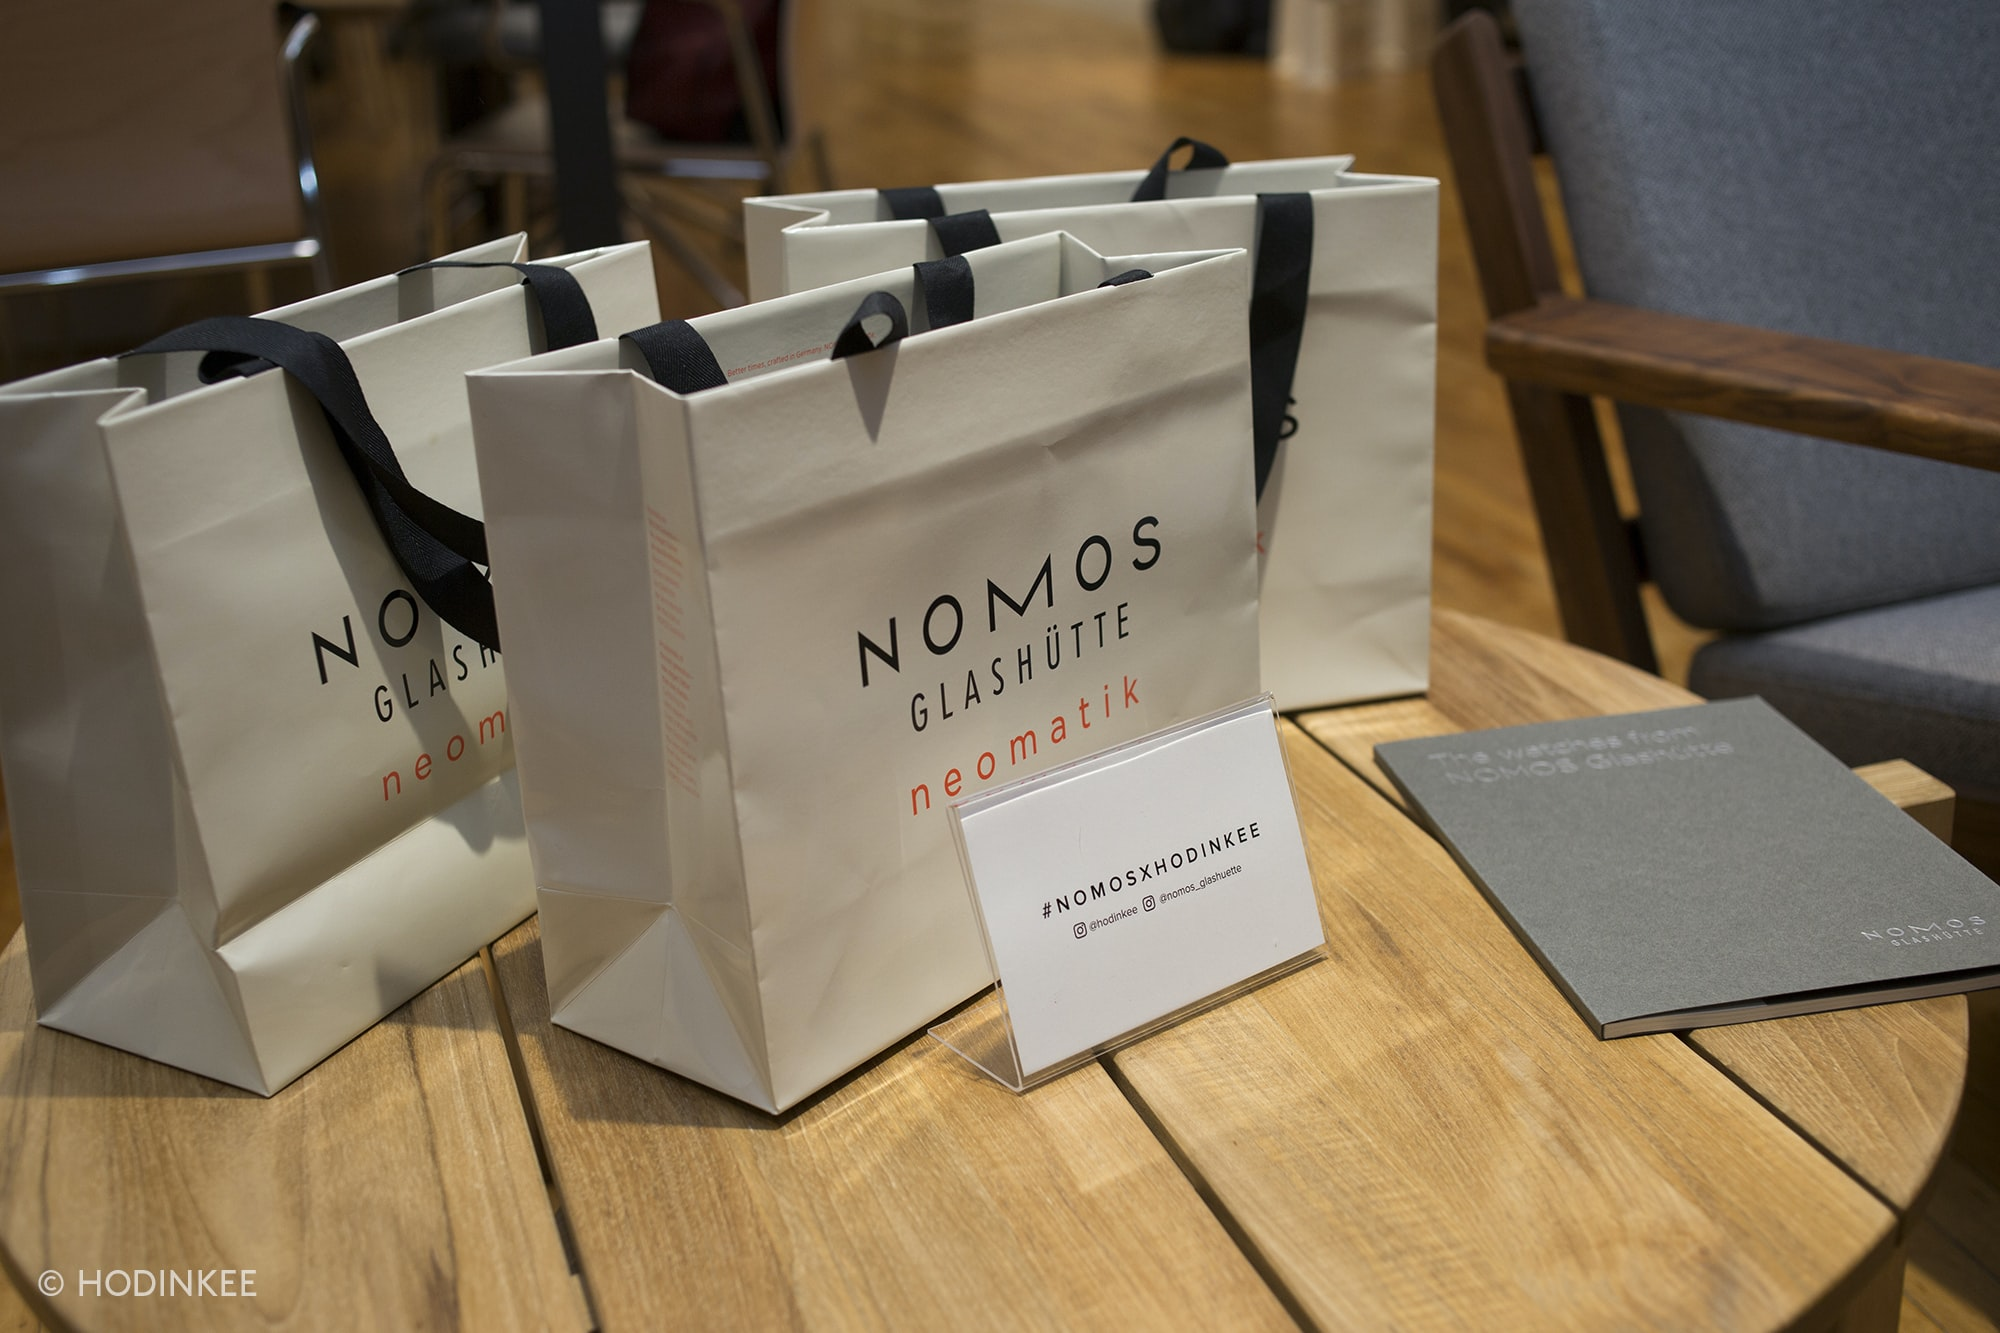 Photo Report: The NOMOS Glashütte Metro Chronometer For HODINKEE Launch Party Photo Report: The NOMOS Glashütte Metro Chronometer For HODINKEE Launch Party 20014876 copy